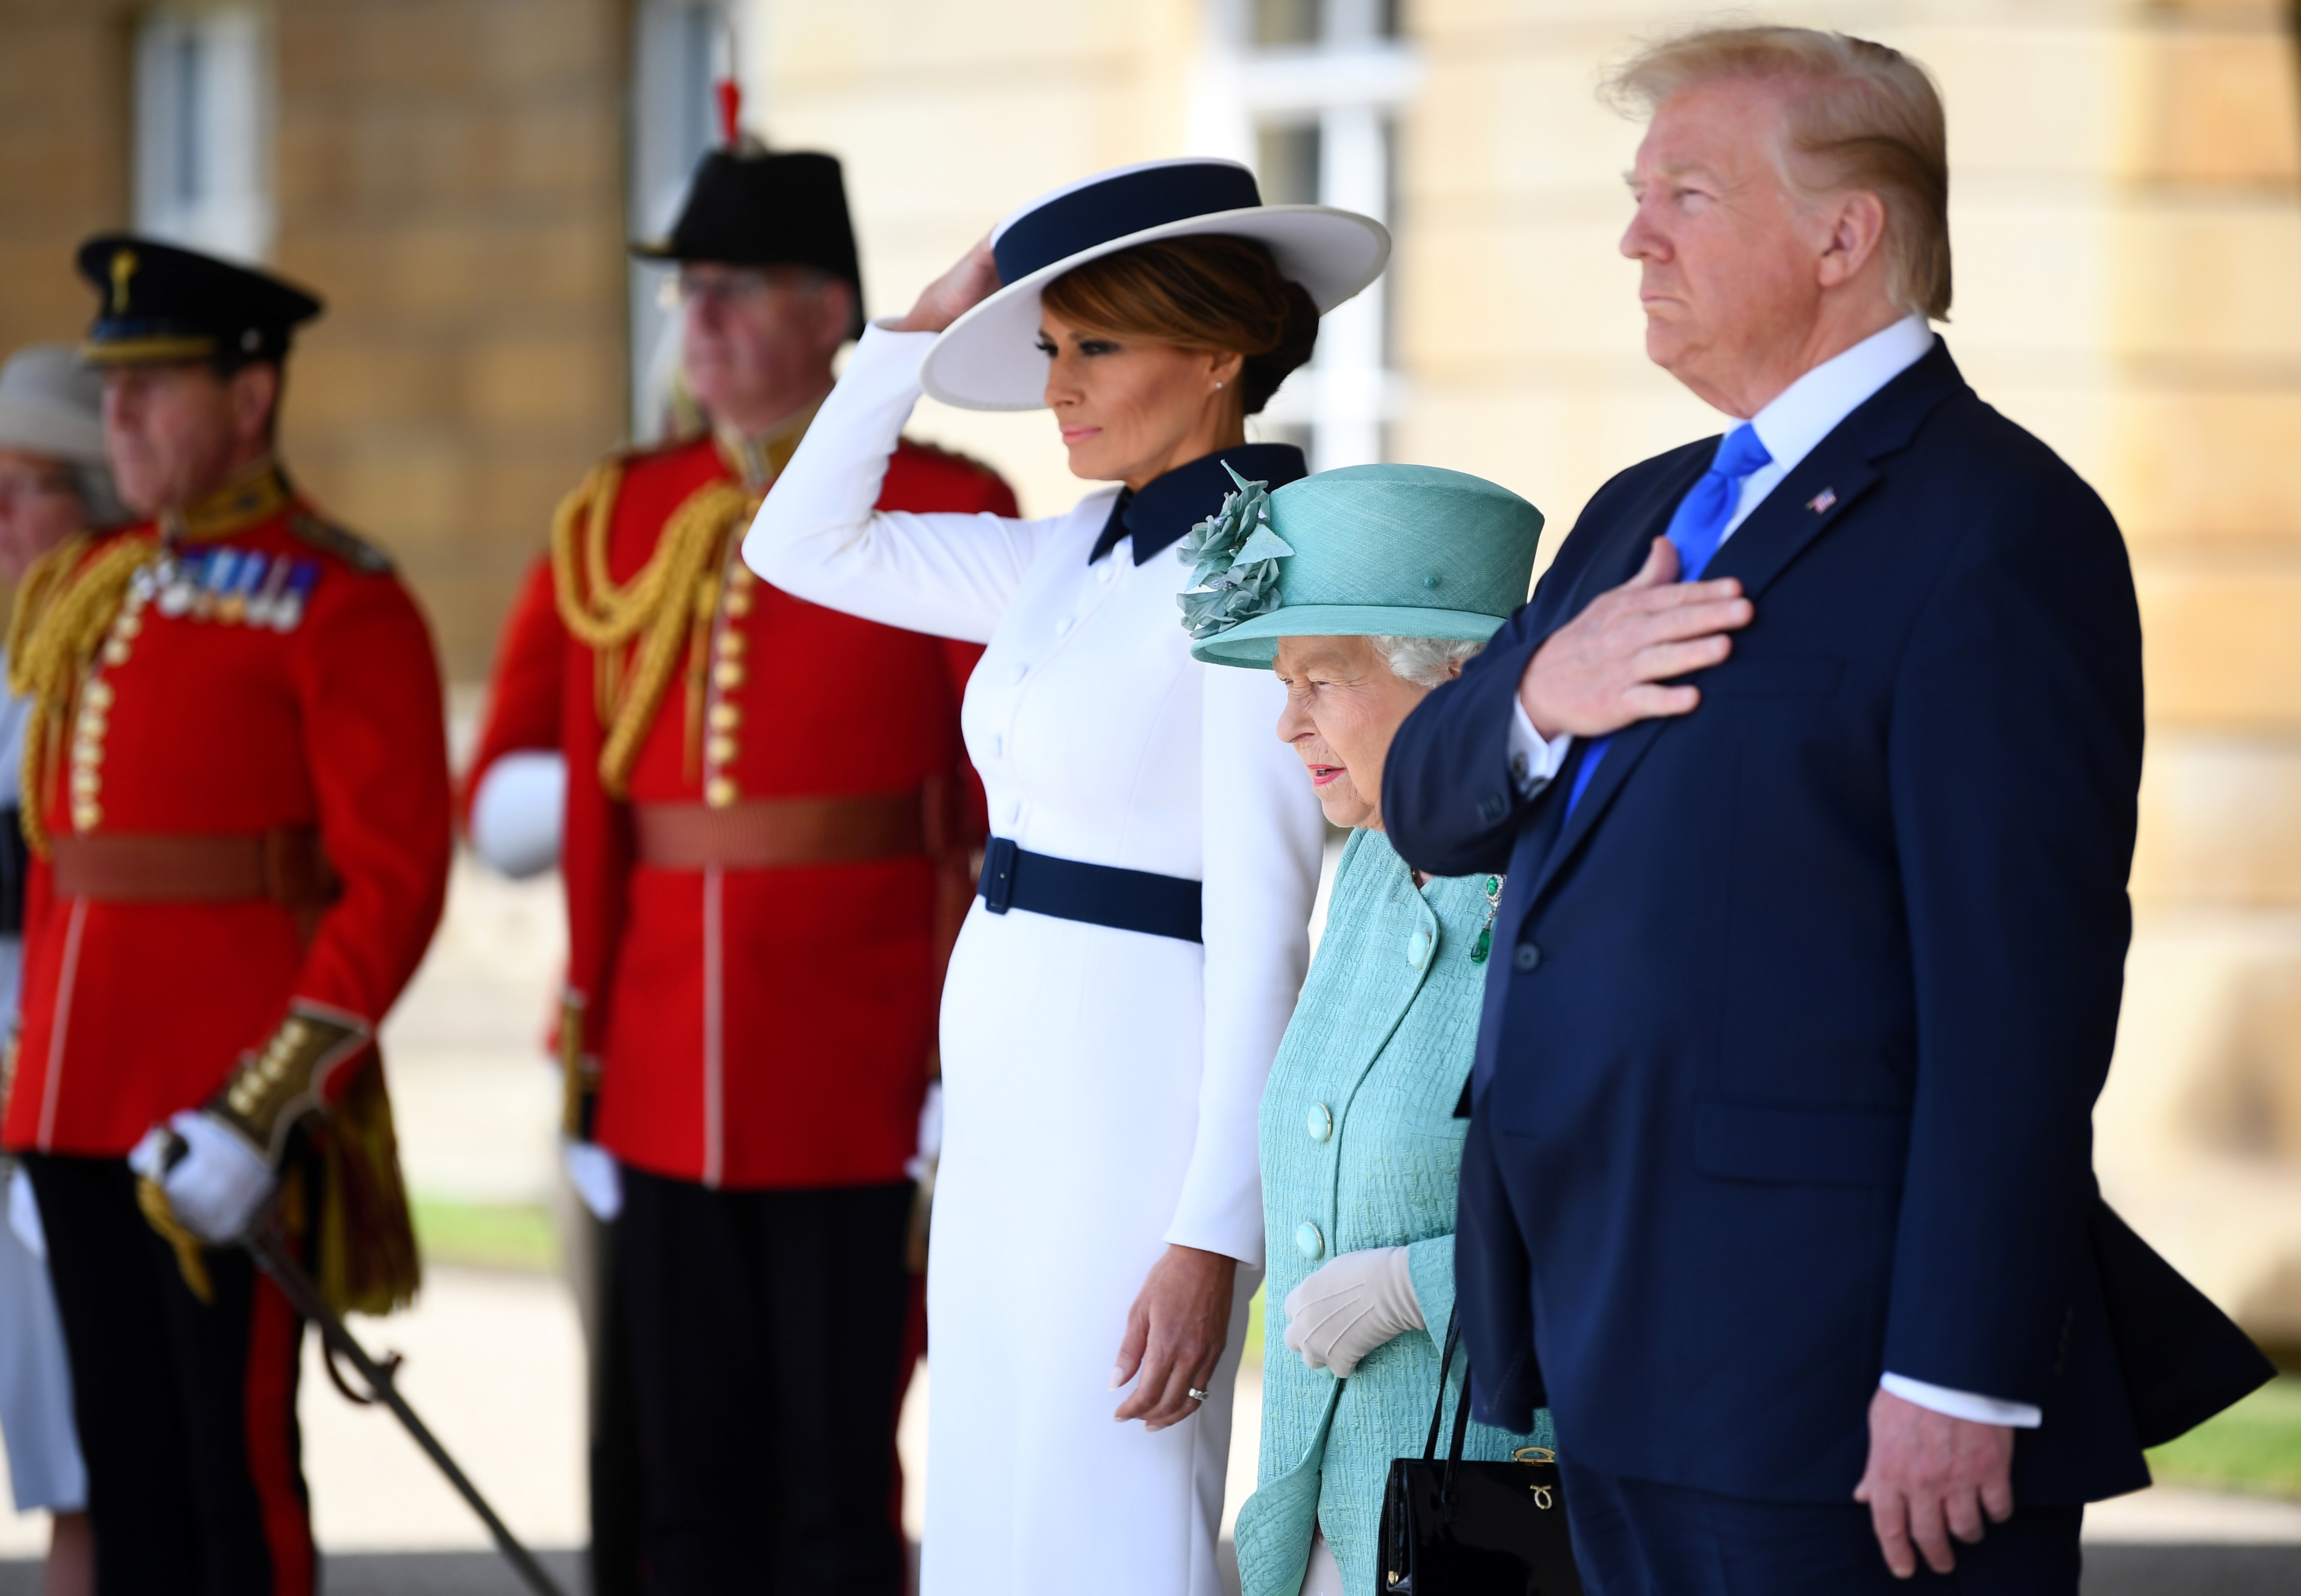 Britain's Queen Elizabeth II (4L) stands with US President Donald Trump (R) and US First Lady Melania Trump (C) as they listen to the US national anthem during a welcome ceremony at Buckingham Palace in central London on June 3, 2019, on the first day of the US president and First Lady's three-day State Visit to the UK. - Britain rolled out the red carpet for US President Donald Trump on June 3 as he arrived in Britain for a state visit already overshadowed by his outspoken remarks on Brexit. (Photo by Victoria Jones / POOL / AFP)        (Photo credit should read VICTORIA JONES/AFP/Getty Images)